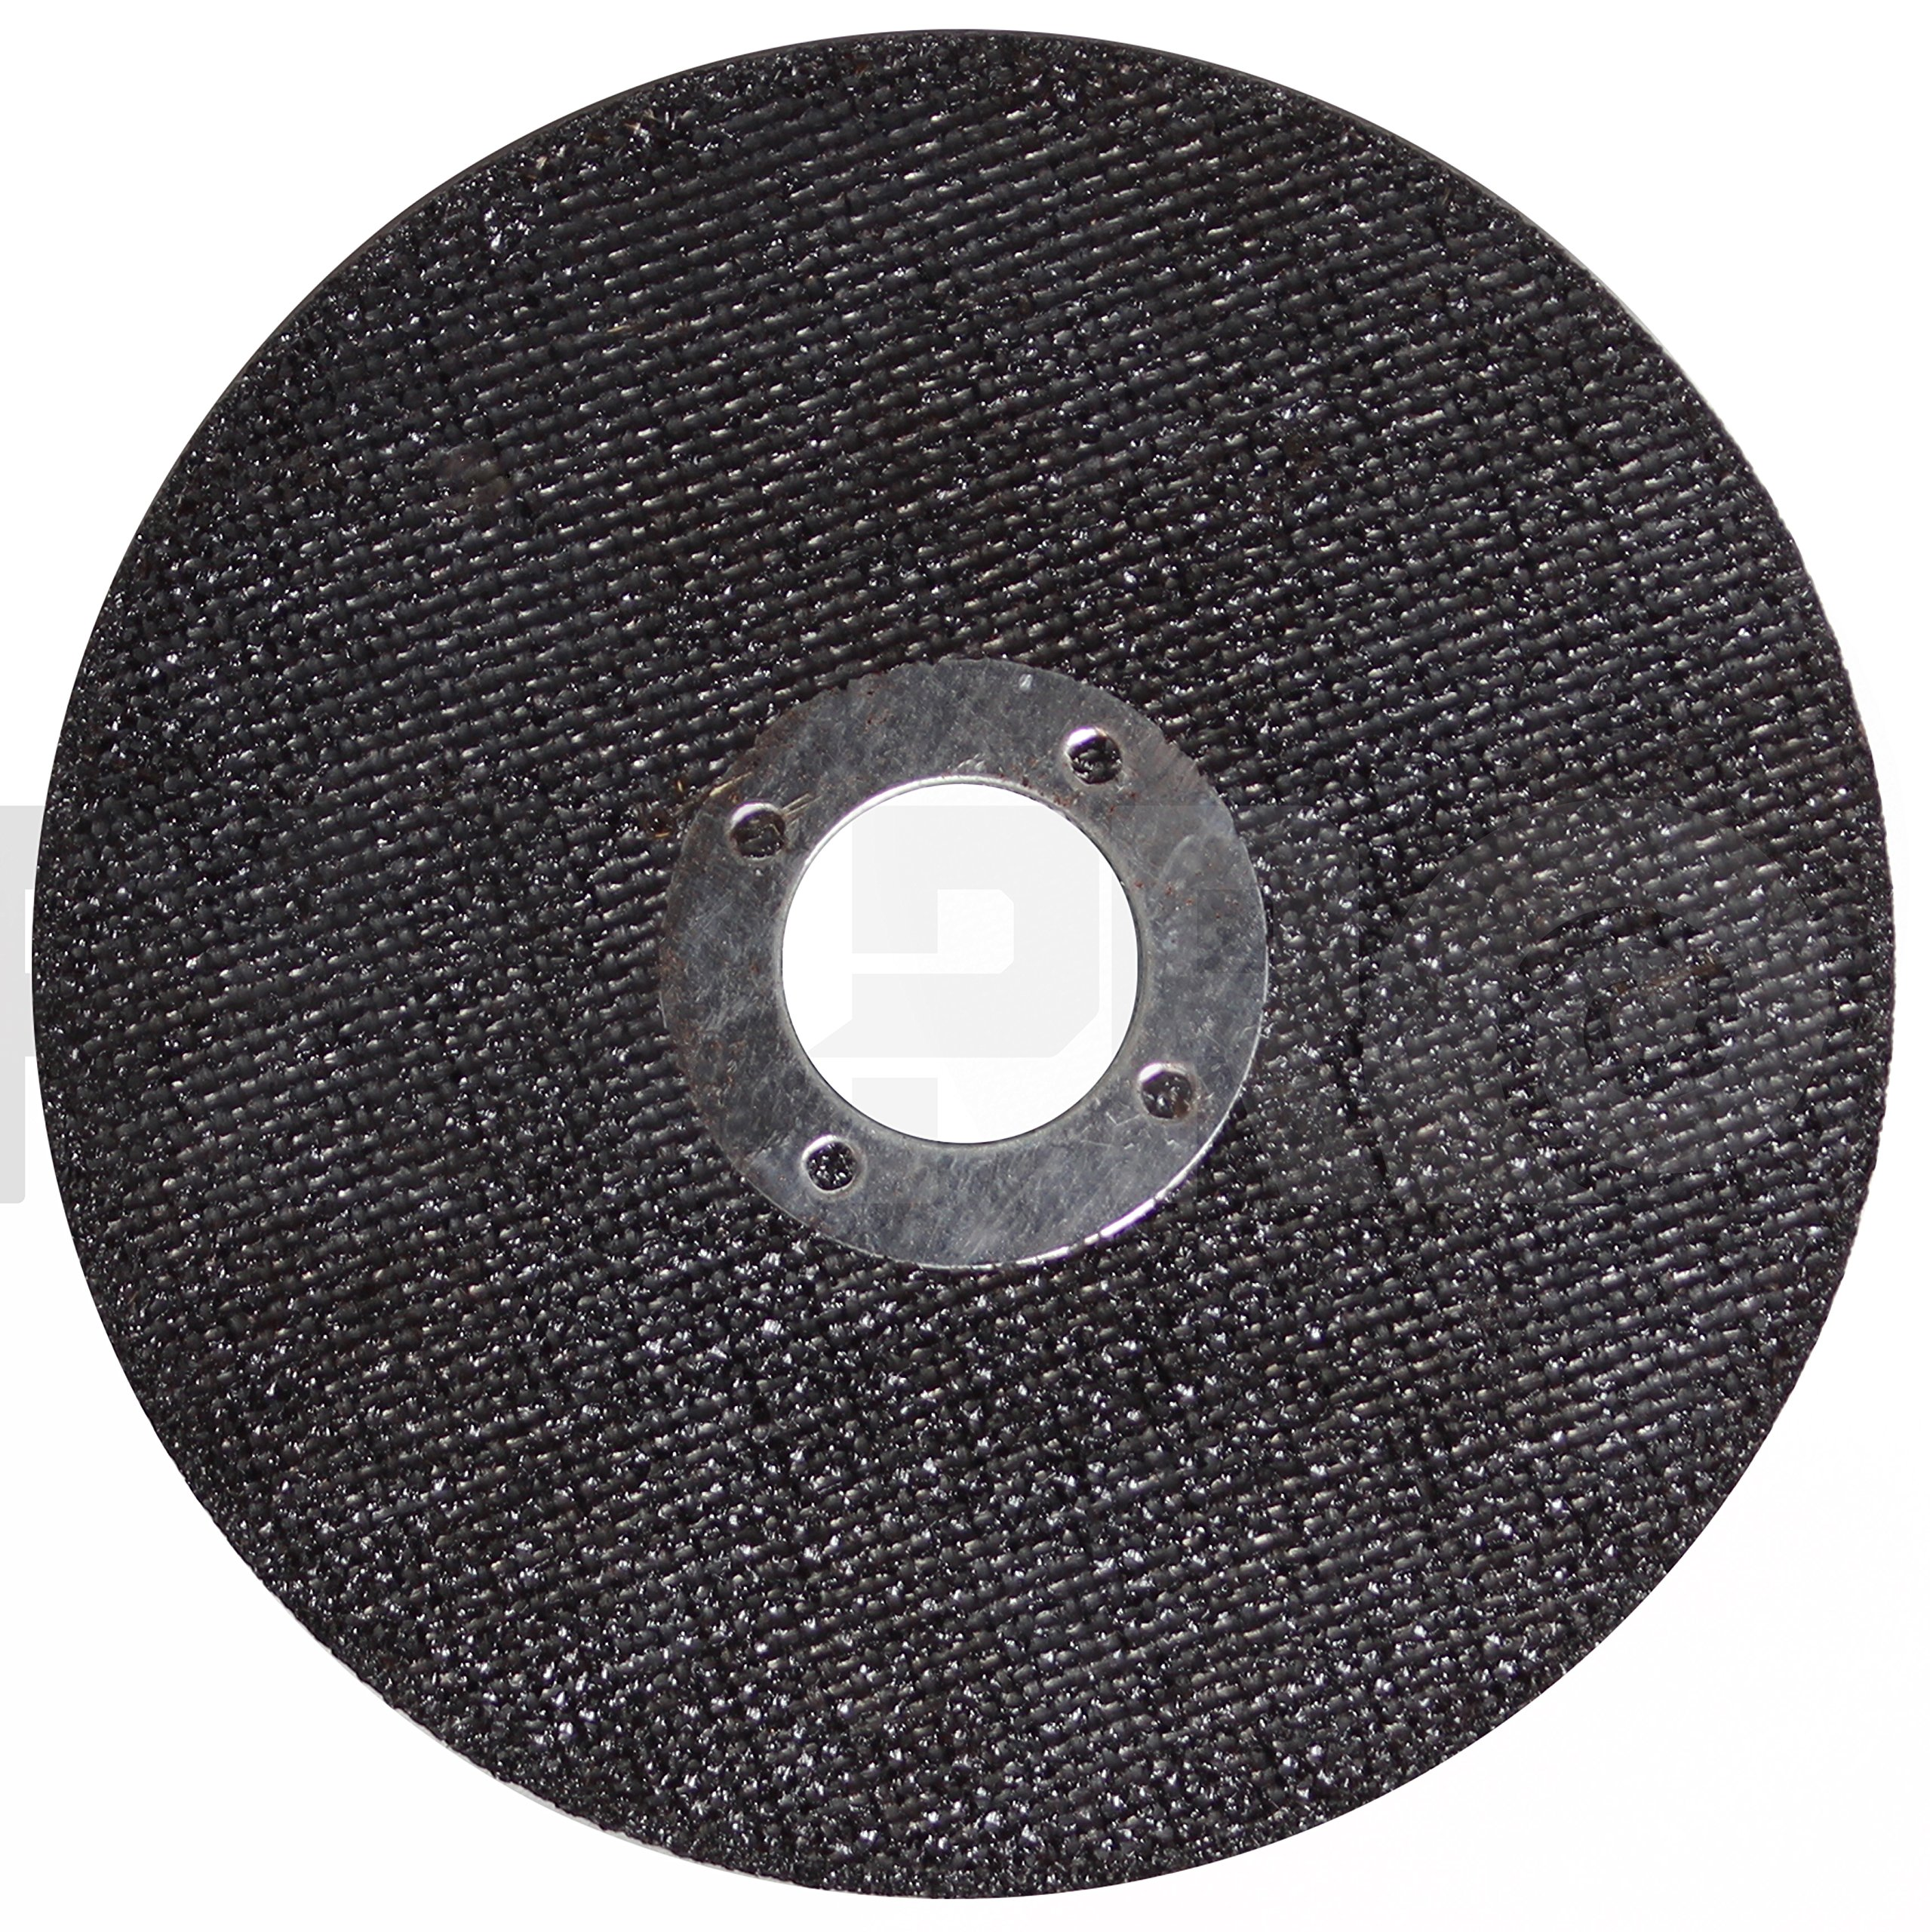 Ram-Pro 4-1/2 Inch Metal Cut-Off Wheel Blades | Abrasive Arbor Grinder Disc Set Ideal for Cutting, Grooving, Sanding and Trimming Ferrous Metal & Steel (100 Pack). by Ram-Pro (Image #3)